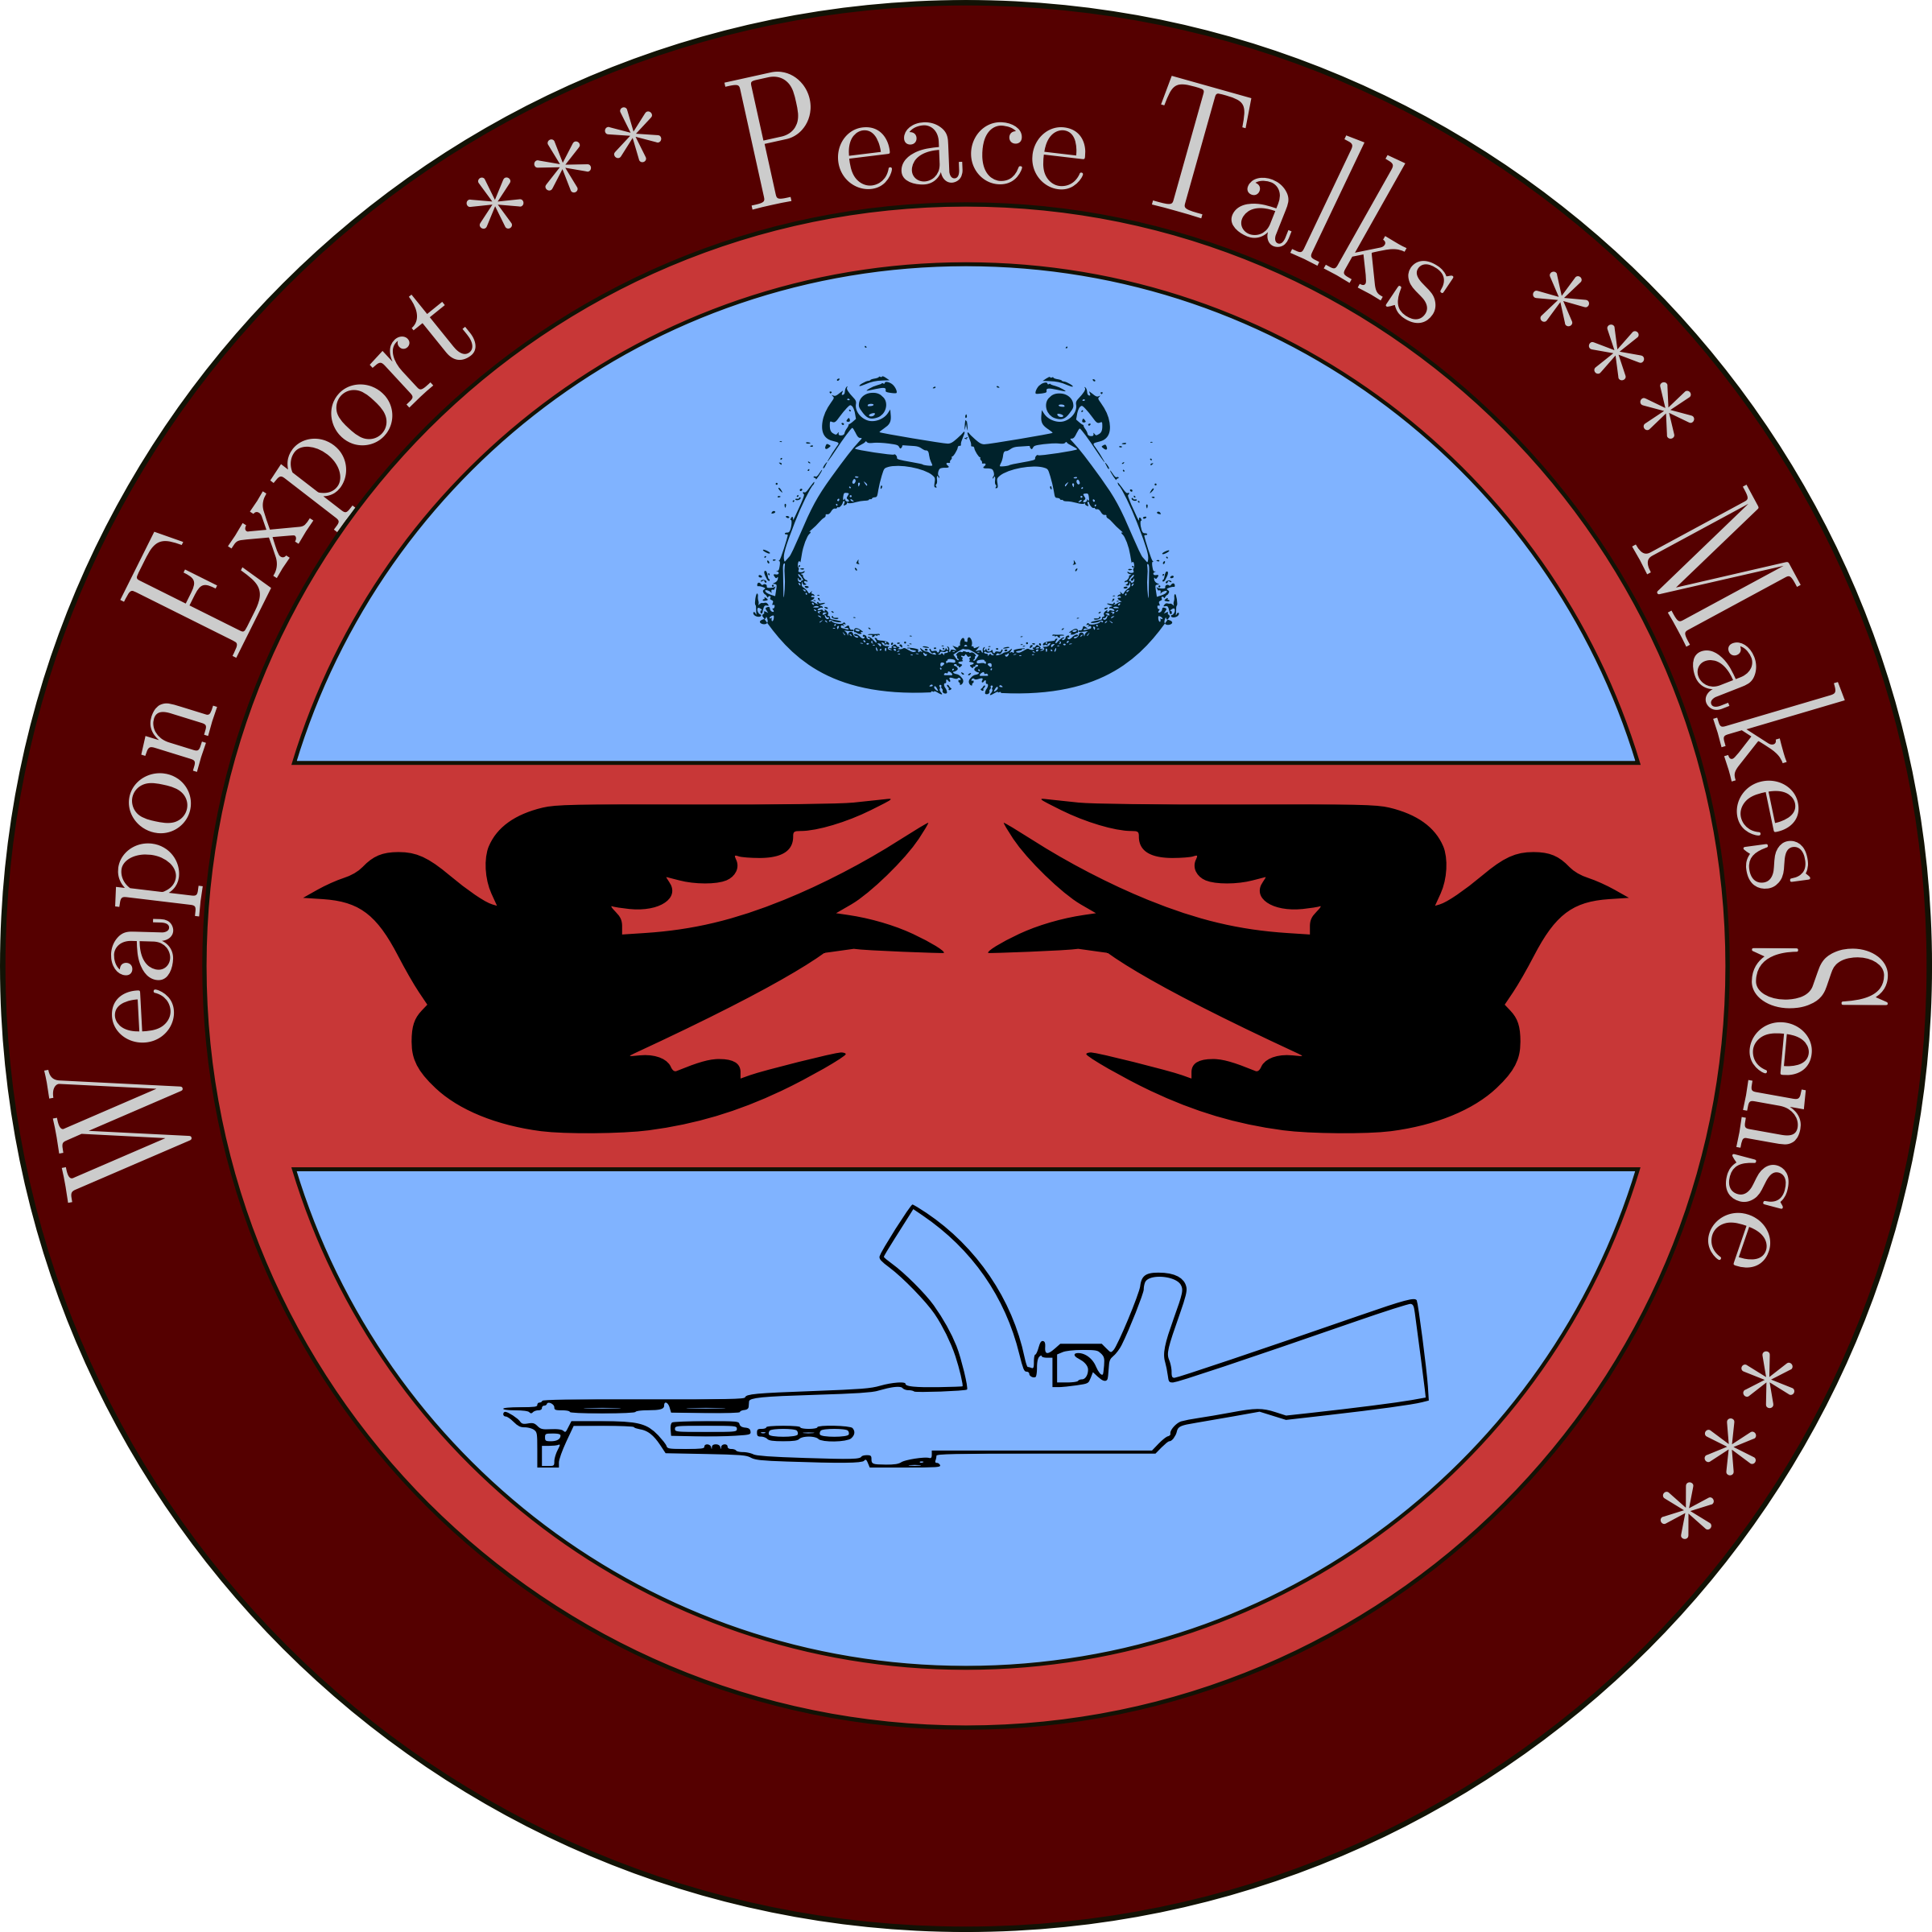 Peace Talks & Weapon Export -- Patch by cibo00